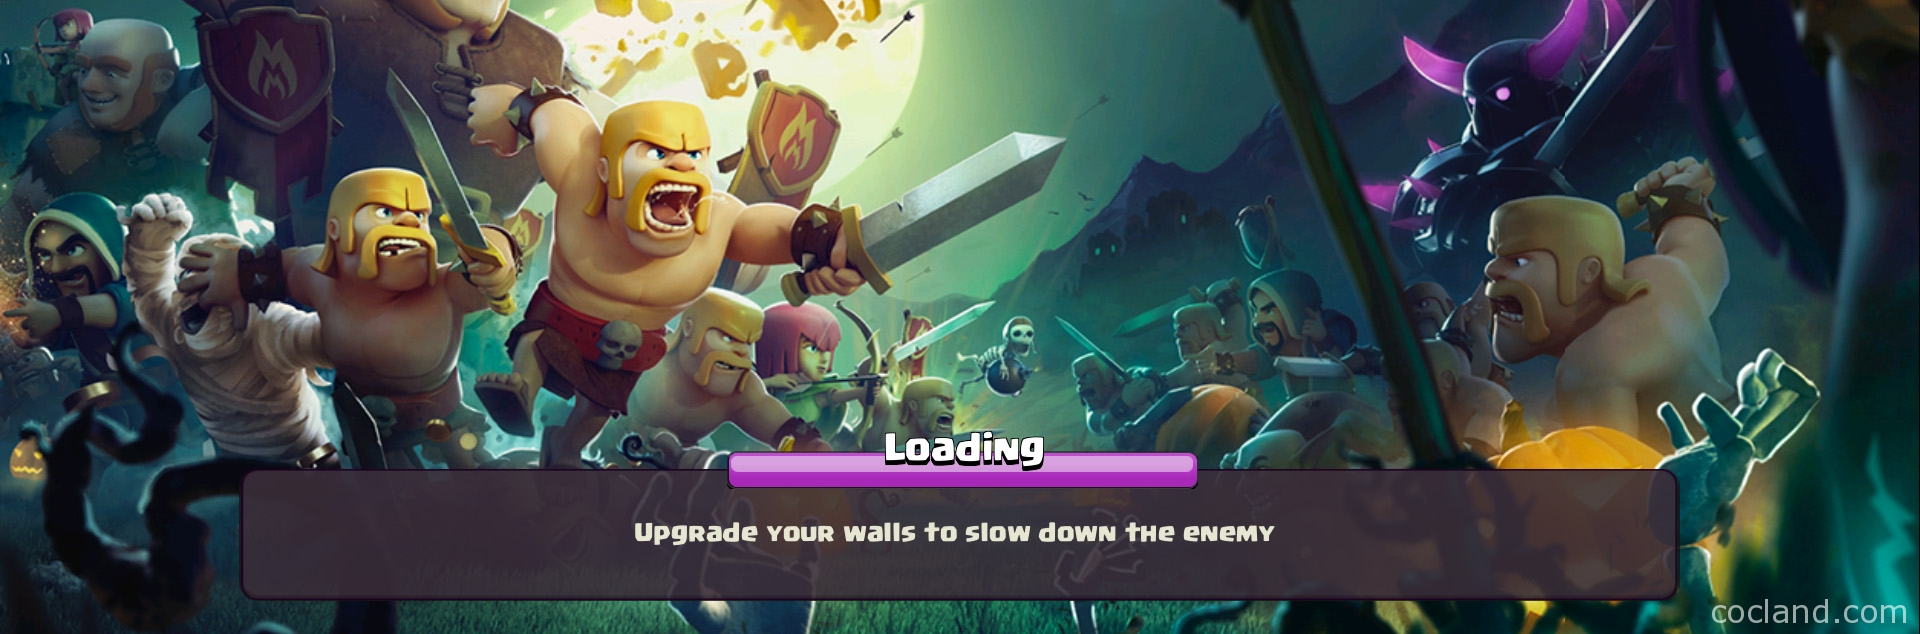 Clash of Clans Loading Screen Hints